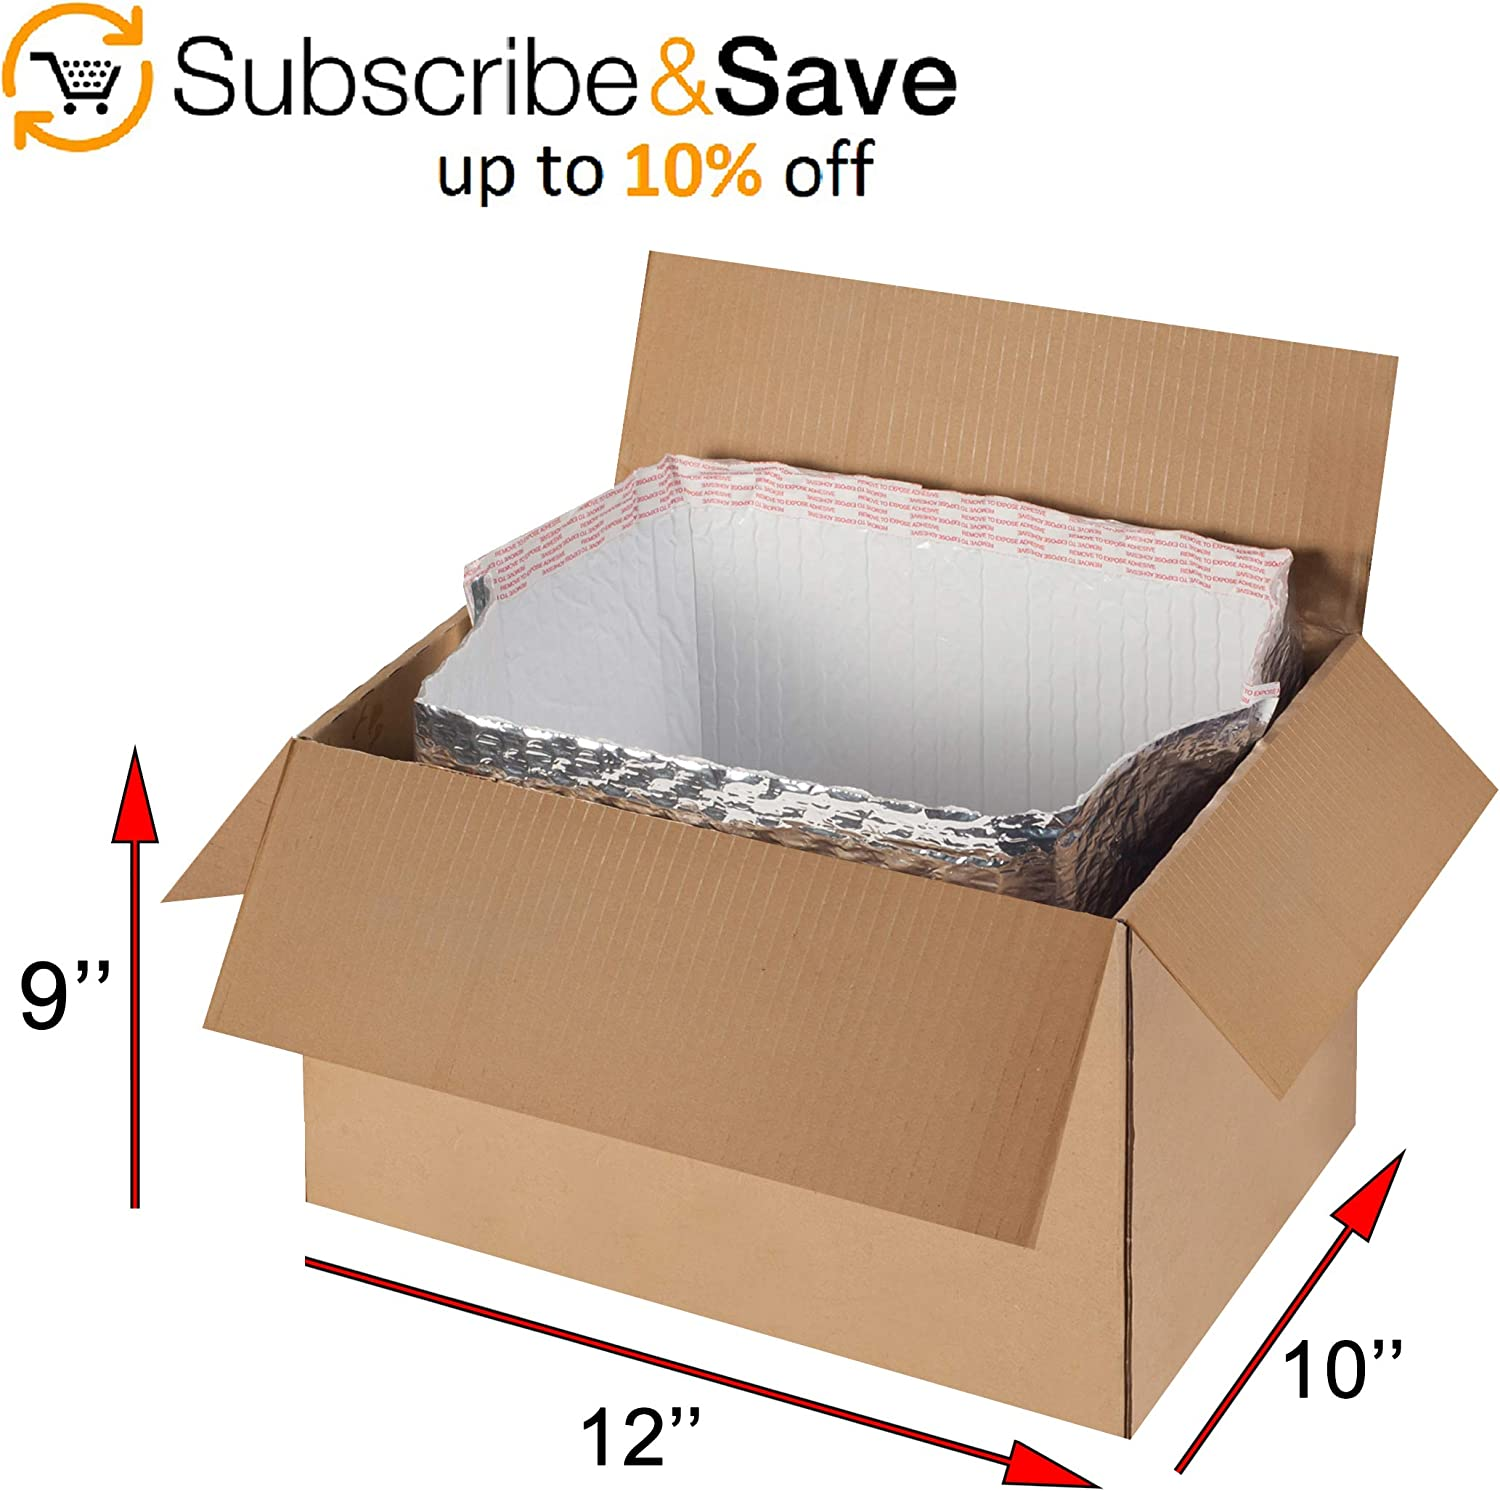 25 12x10x9 Corrugated Boxes Shipping Packing Moving Cardboard Cartons